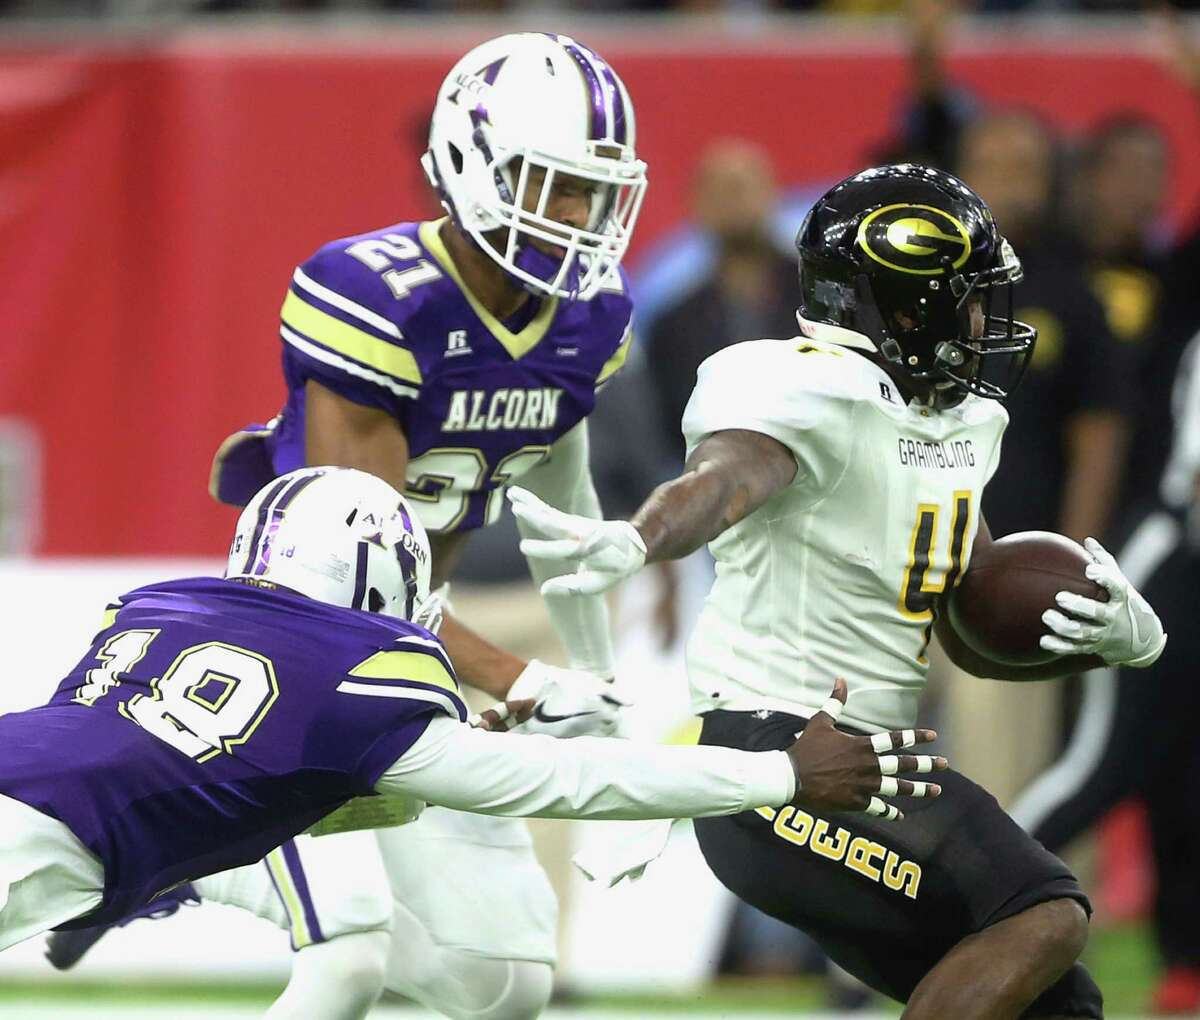 Grambling State University's Martez Carter (4) is tackled by Alcorn State University's Leishaun Ealey (18) and Jayron Harness (21) during the first quarter of Southwestern Athletic Conference Championship Game at NRG Stadium Saturday, Dec. 3, 2016, in Houston.